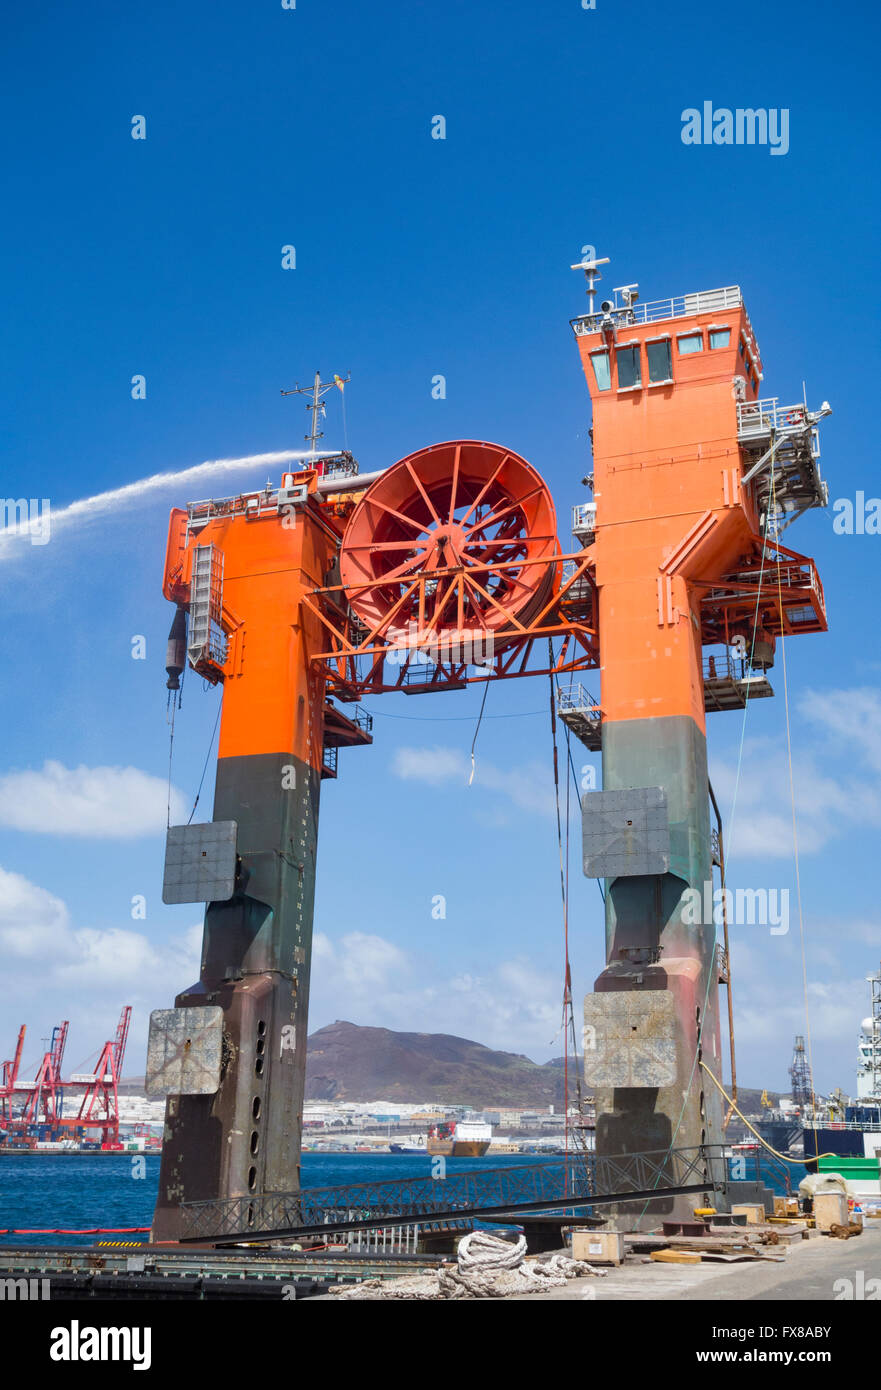 Hiload DP platform used to transfer crude products between offshore oil rigs and Tankers - Stock Image